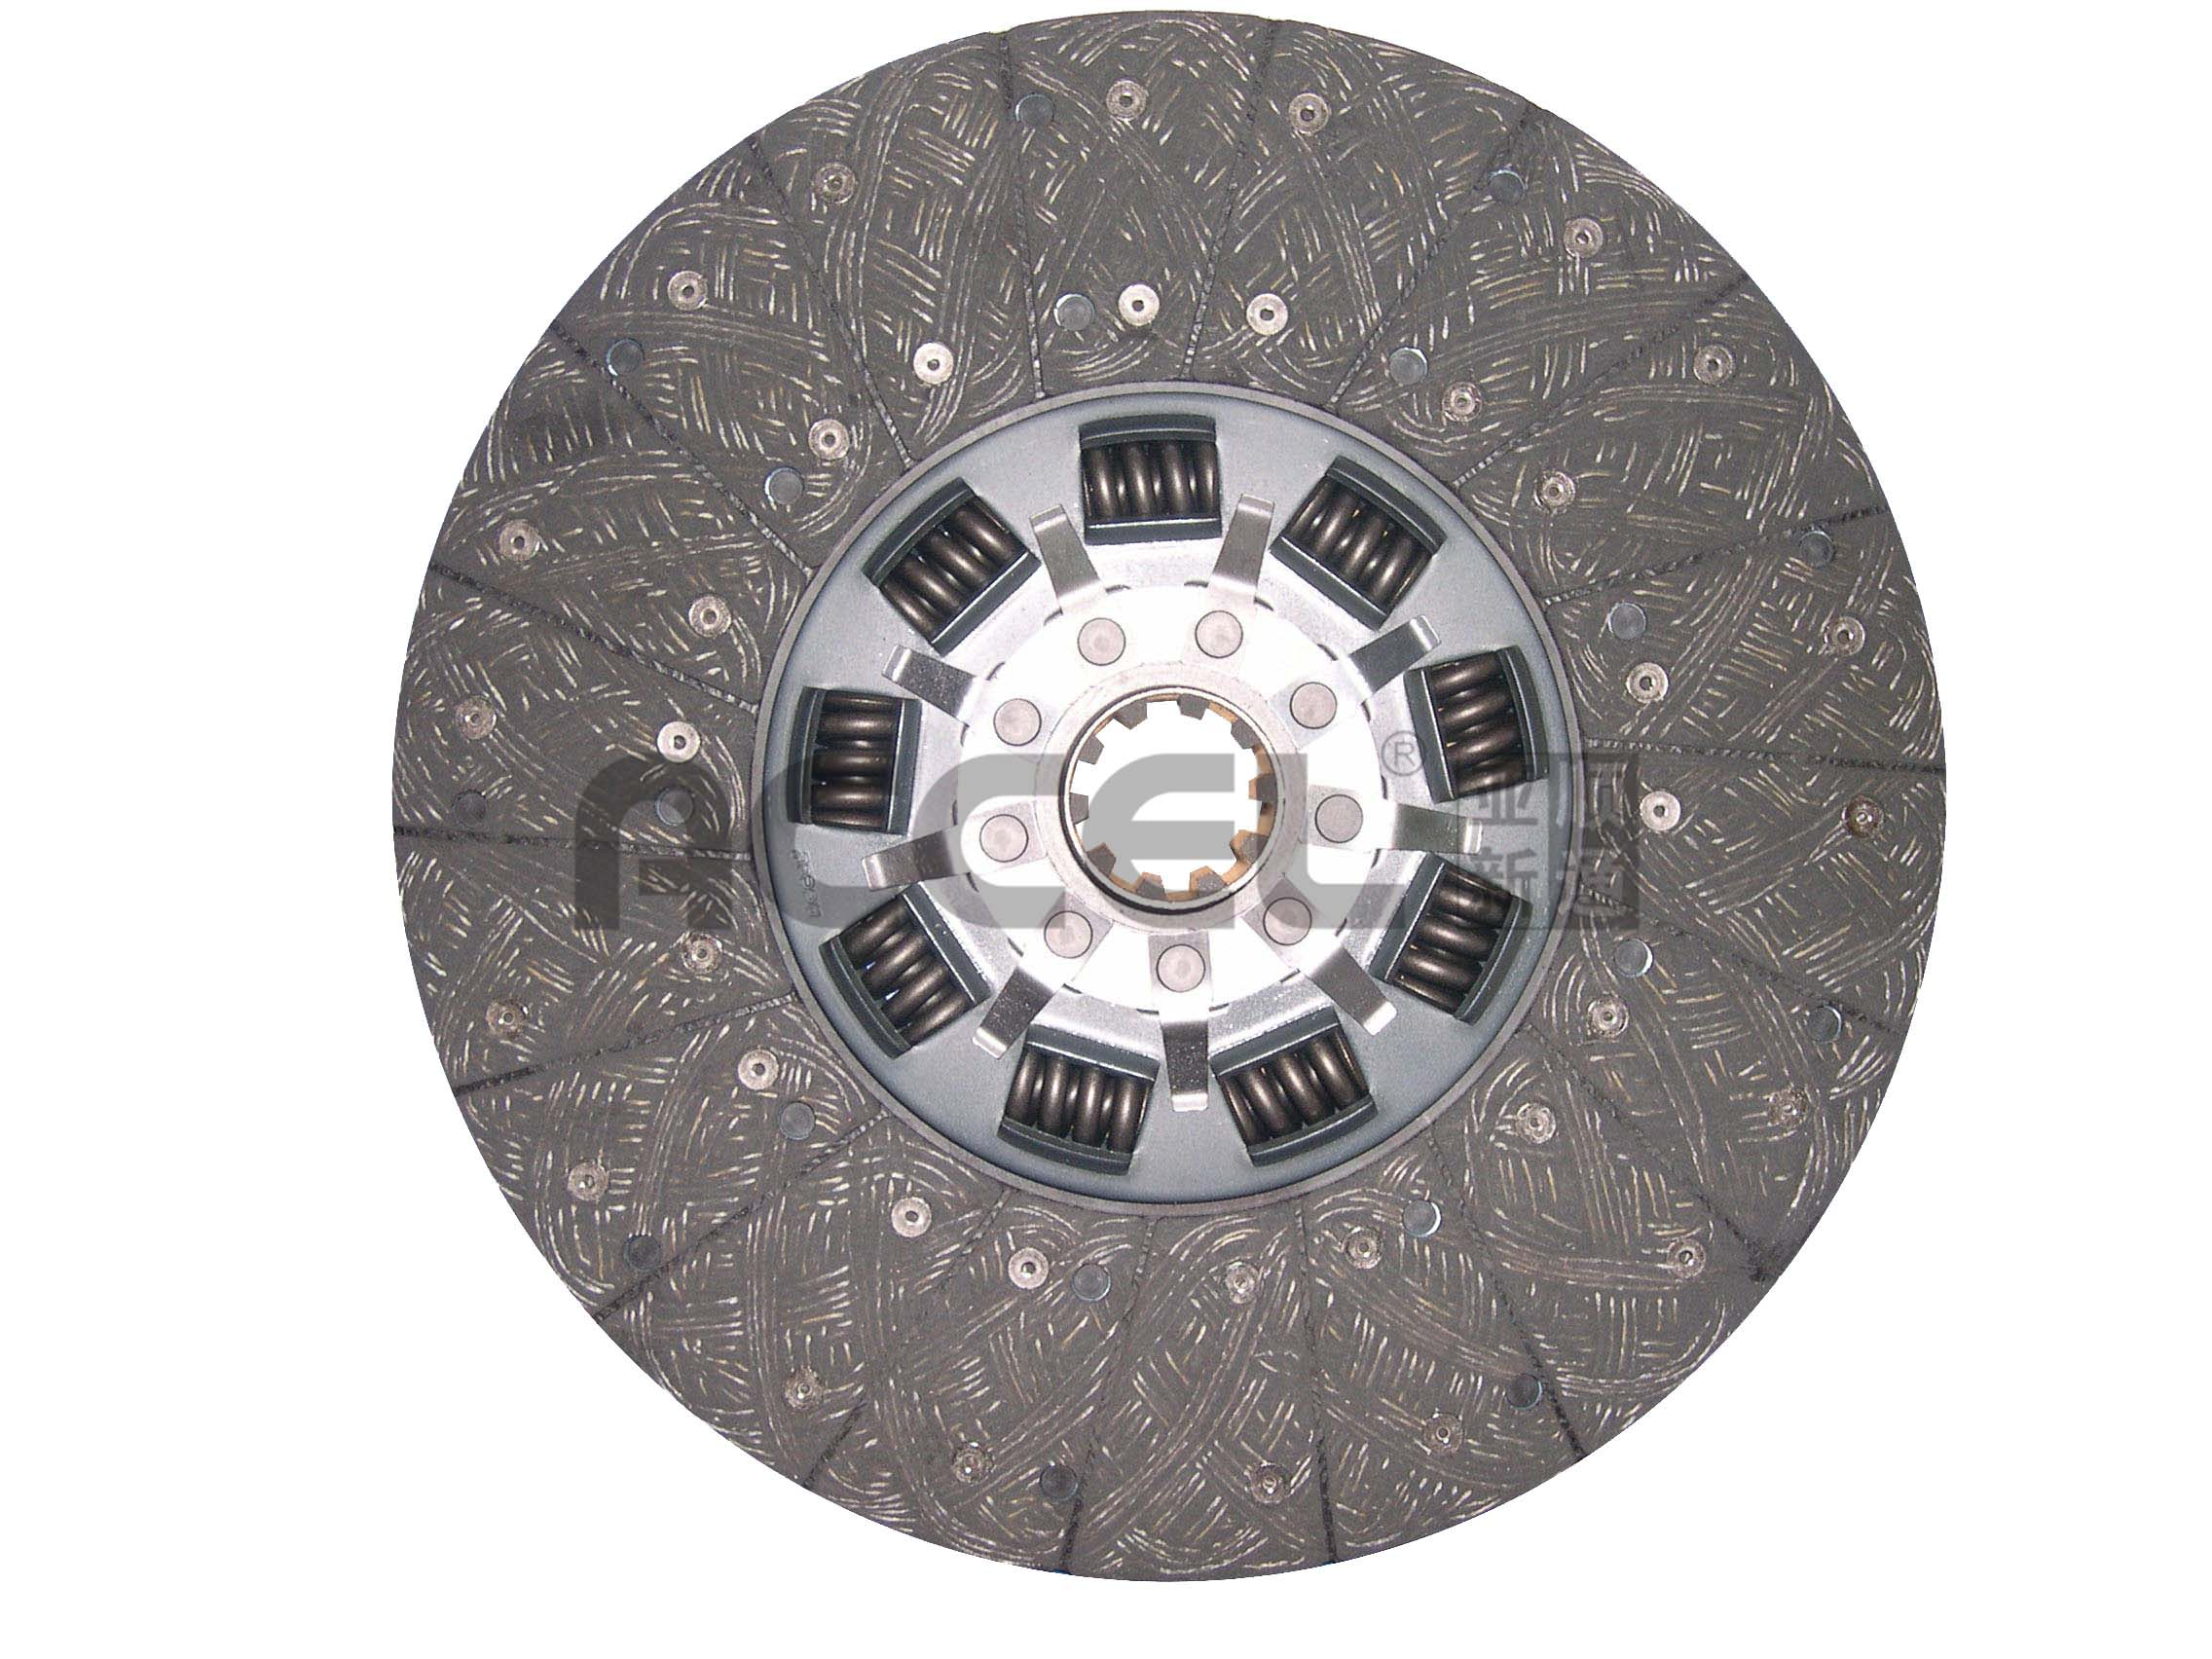 Clutch Disc/OE:1861 760 034